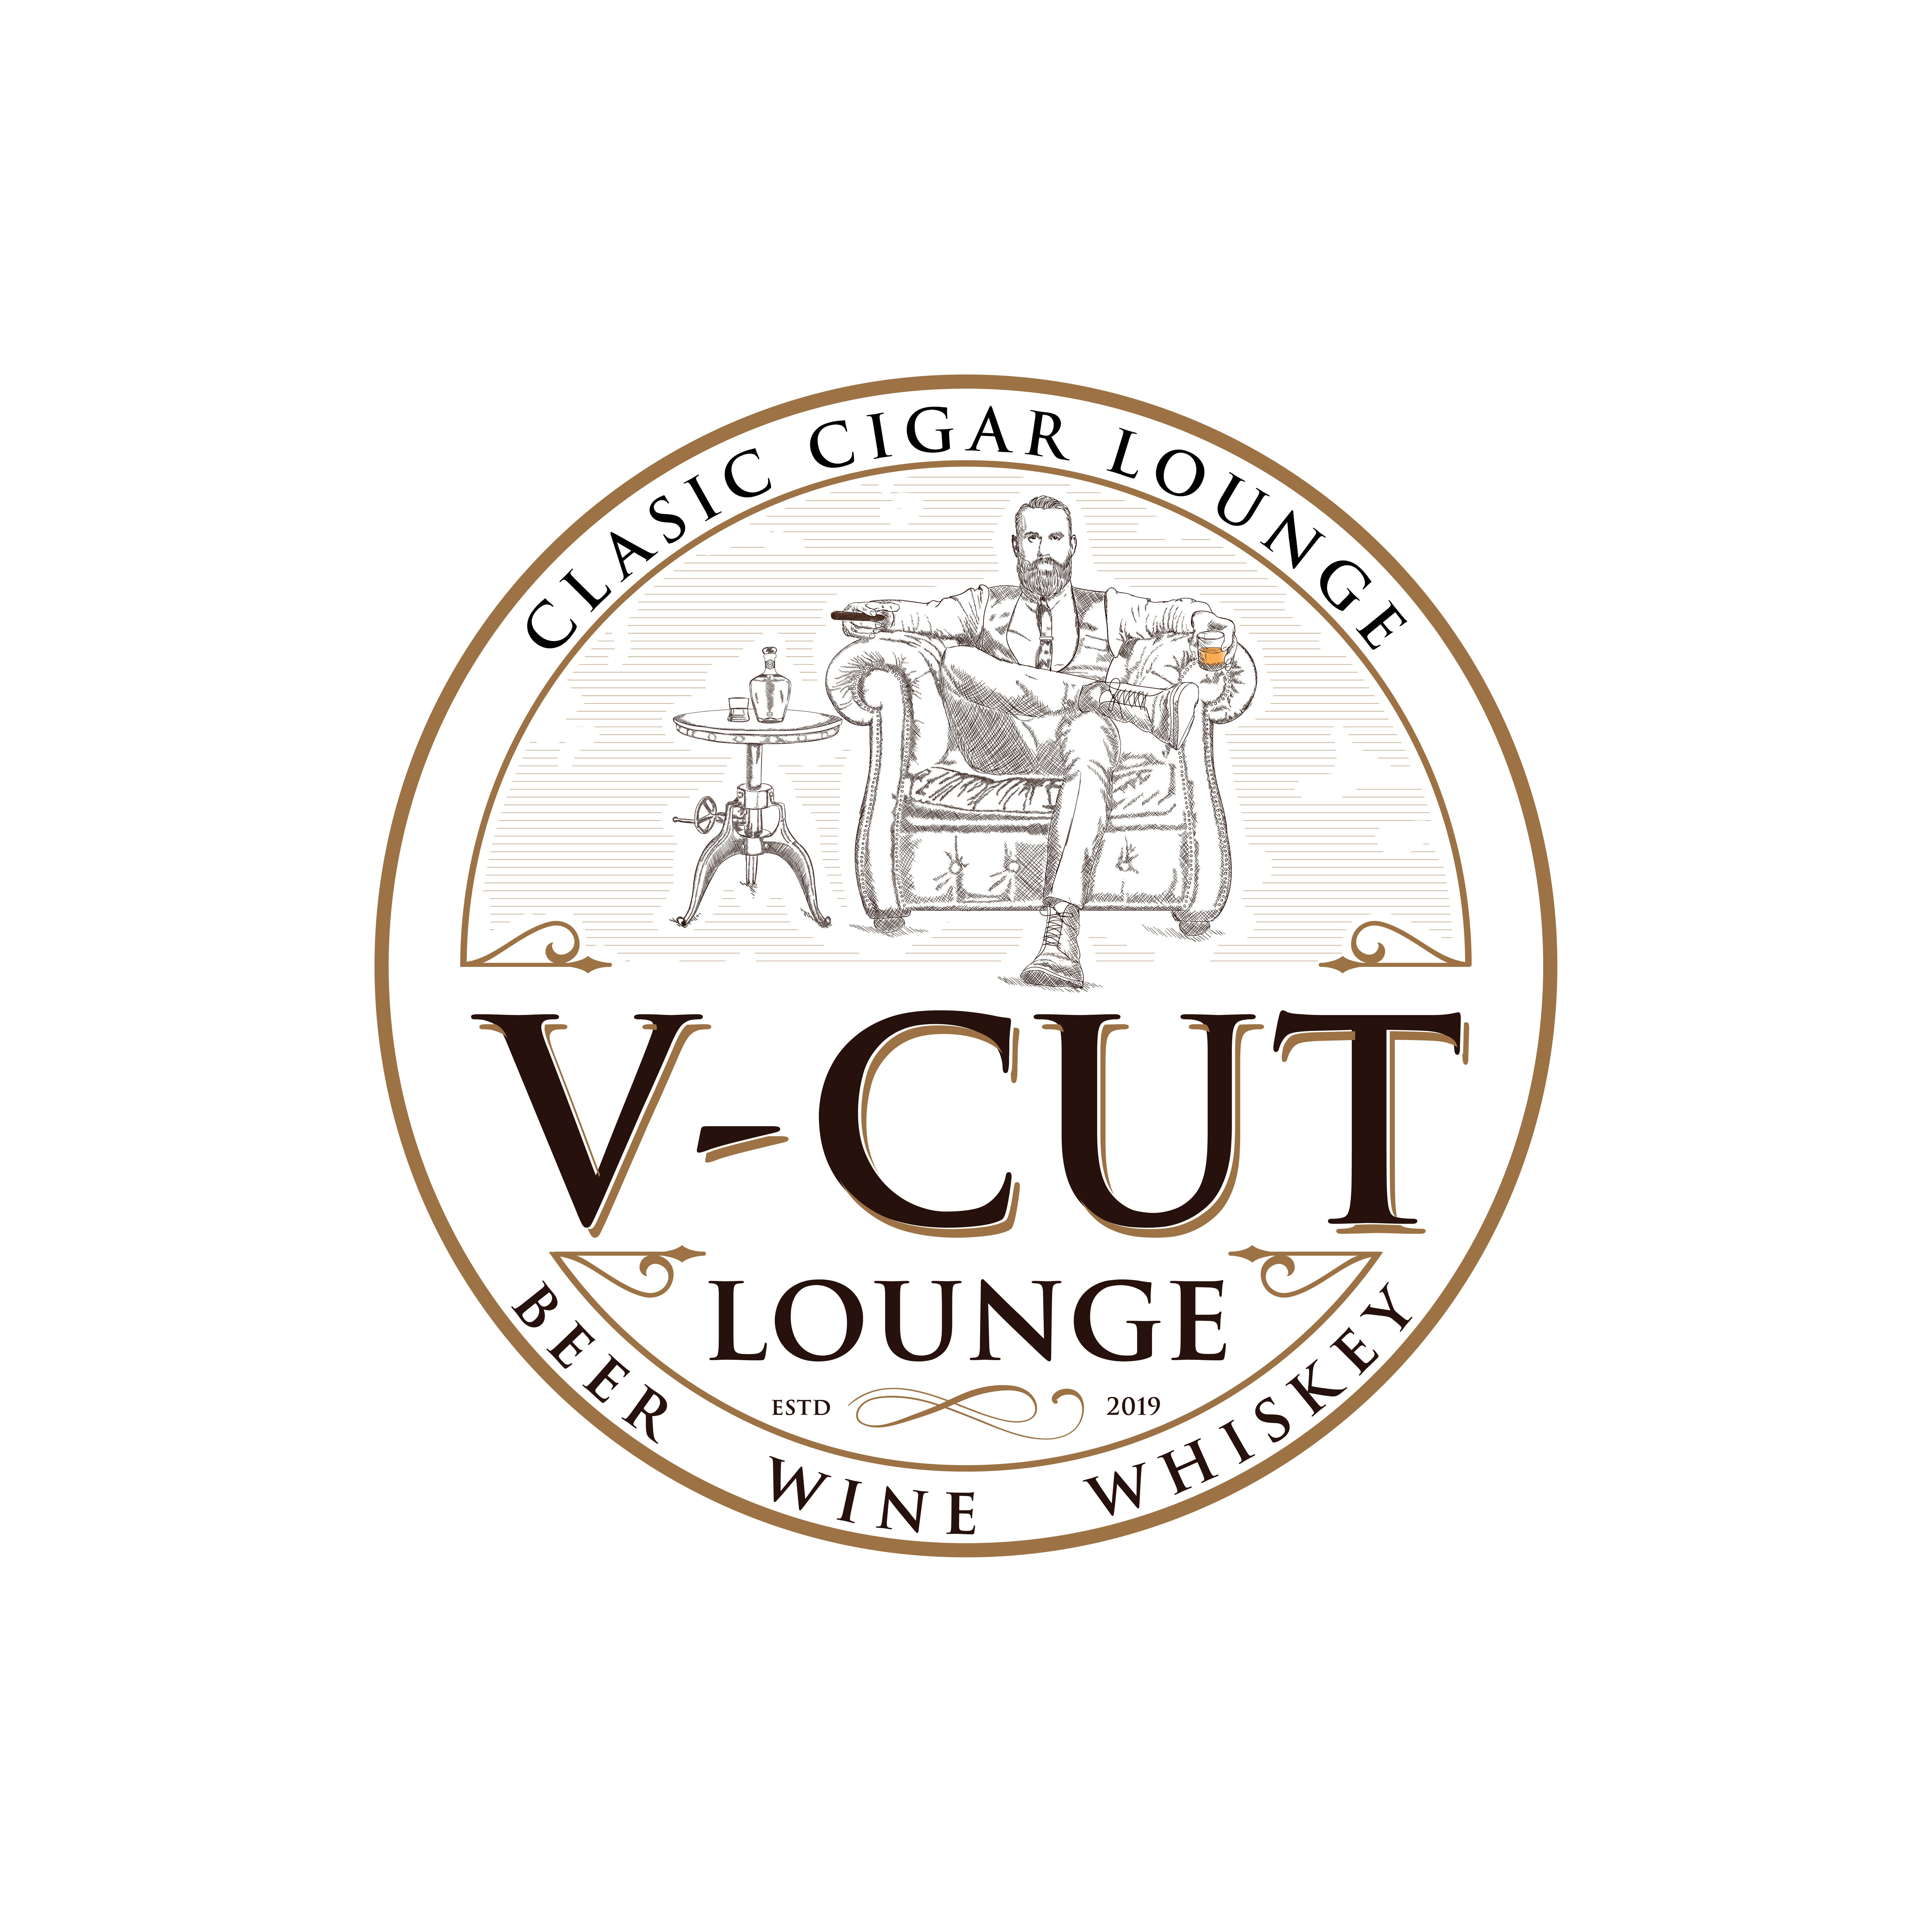 V-Cut Lounge in need of classy vintage logo